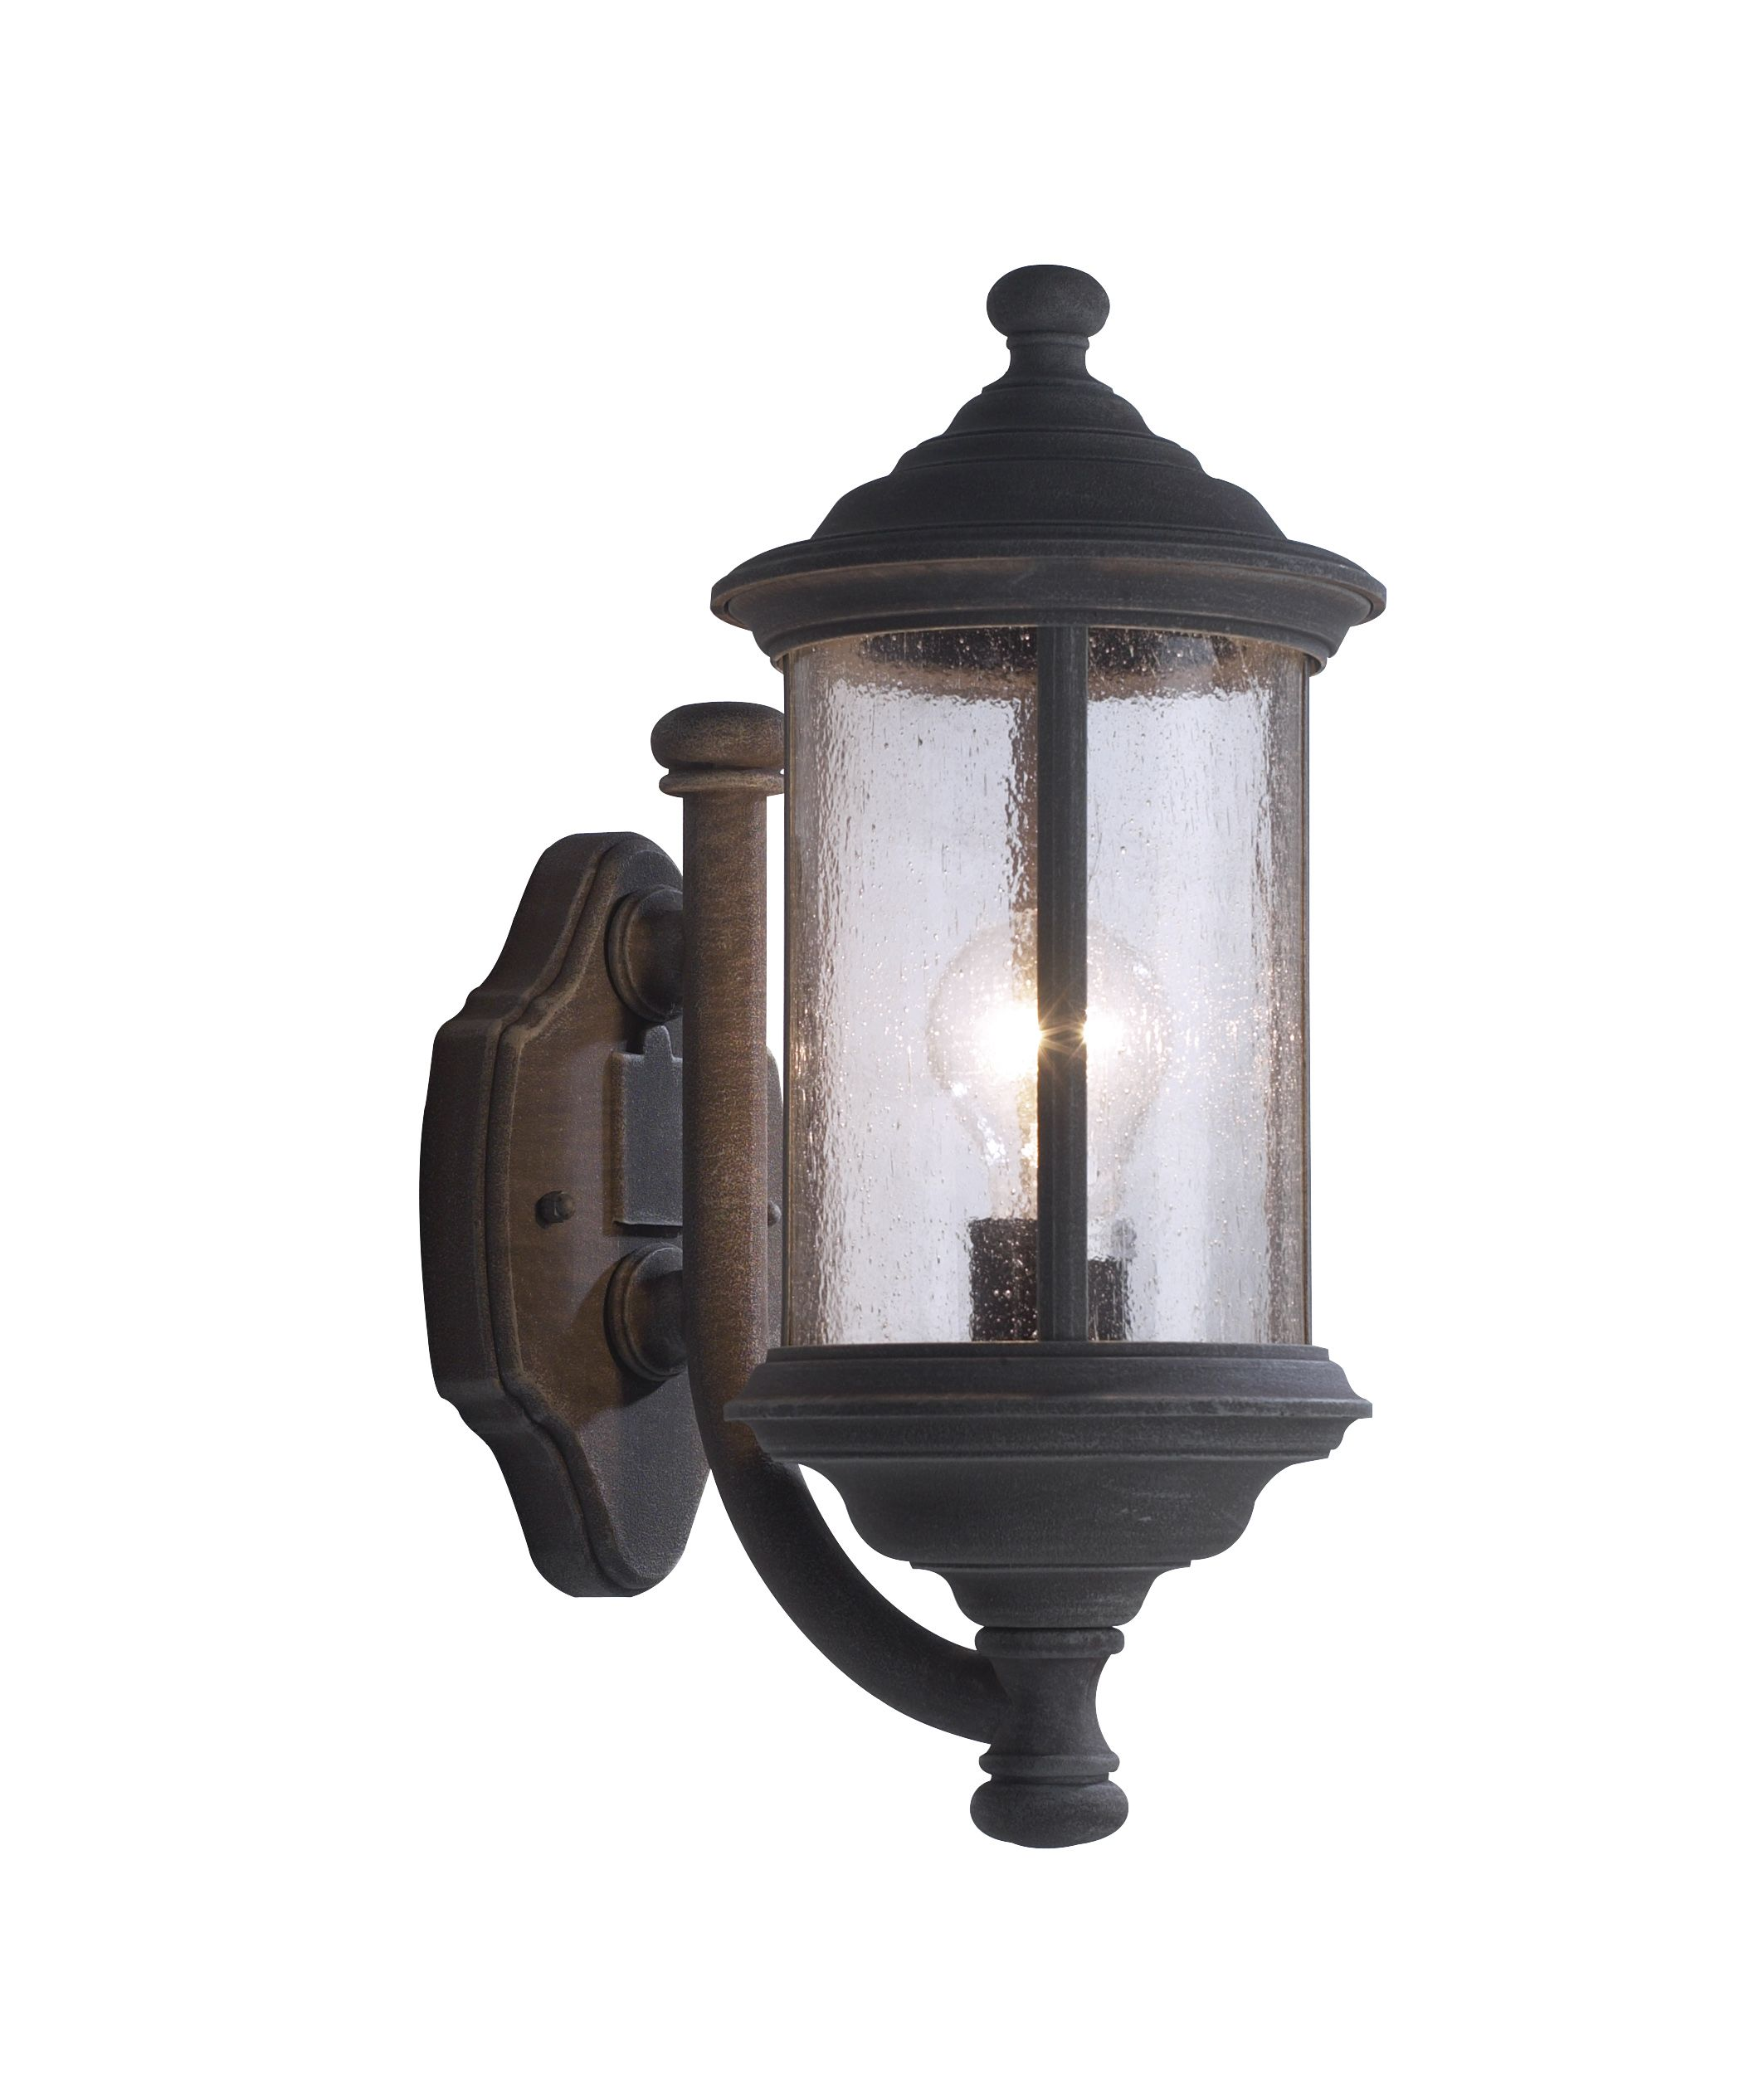 Brompton 1-light Old Iron Double Insulated Outdoor Wall Light Double Insulated BXBRO1661-17